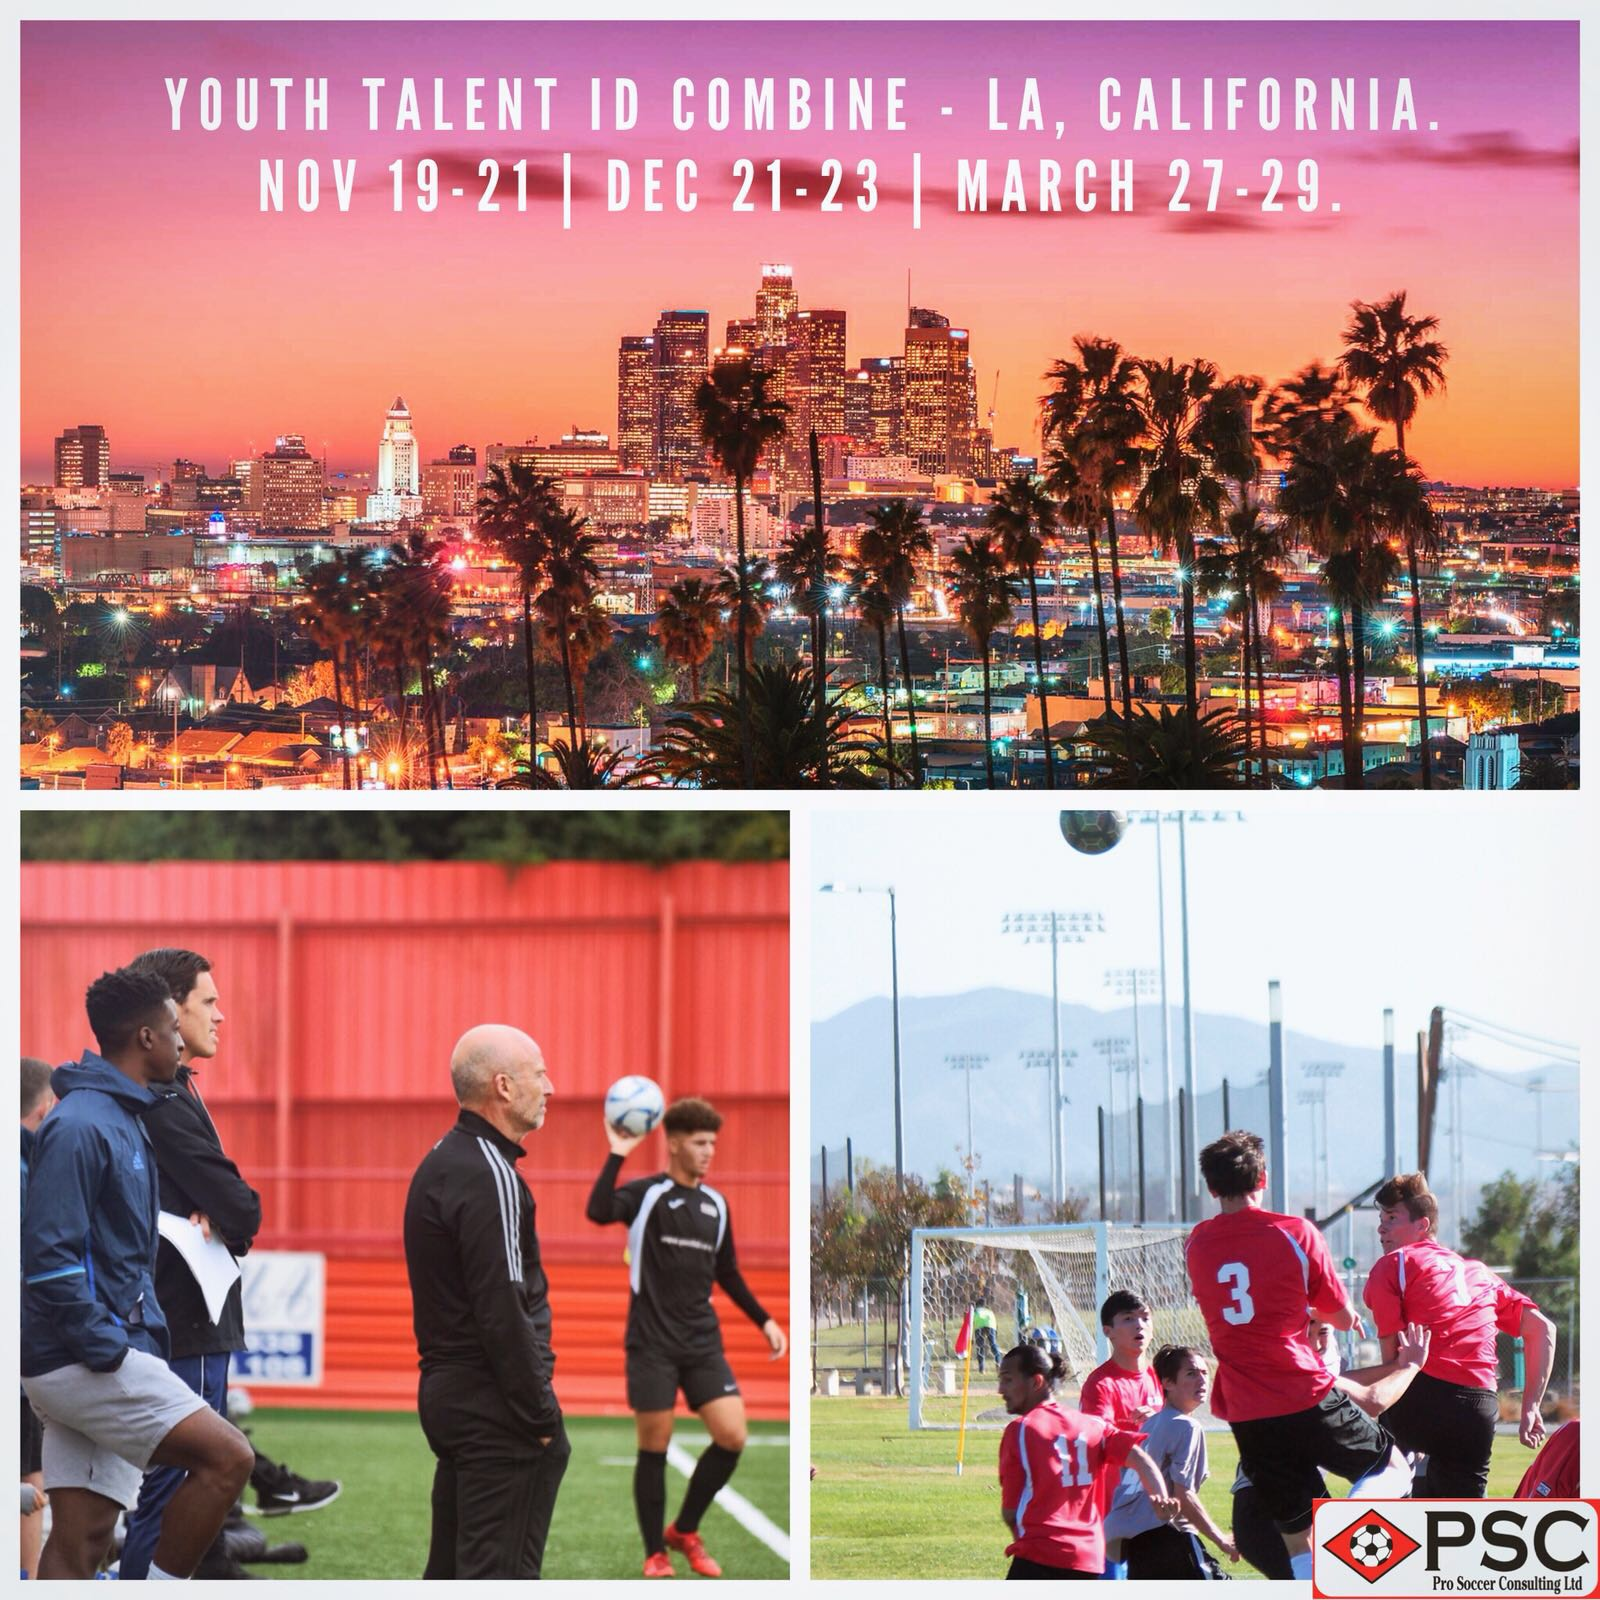 Youth Soccer Camp: Los Angeles, CA | PSC (Pro Soccer Consulting) Academy